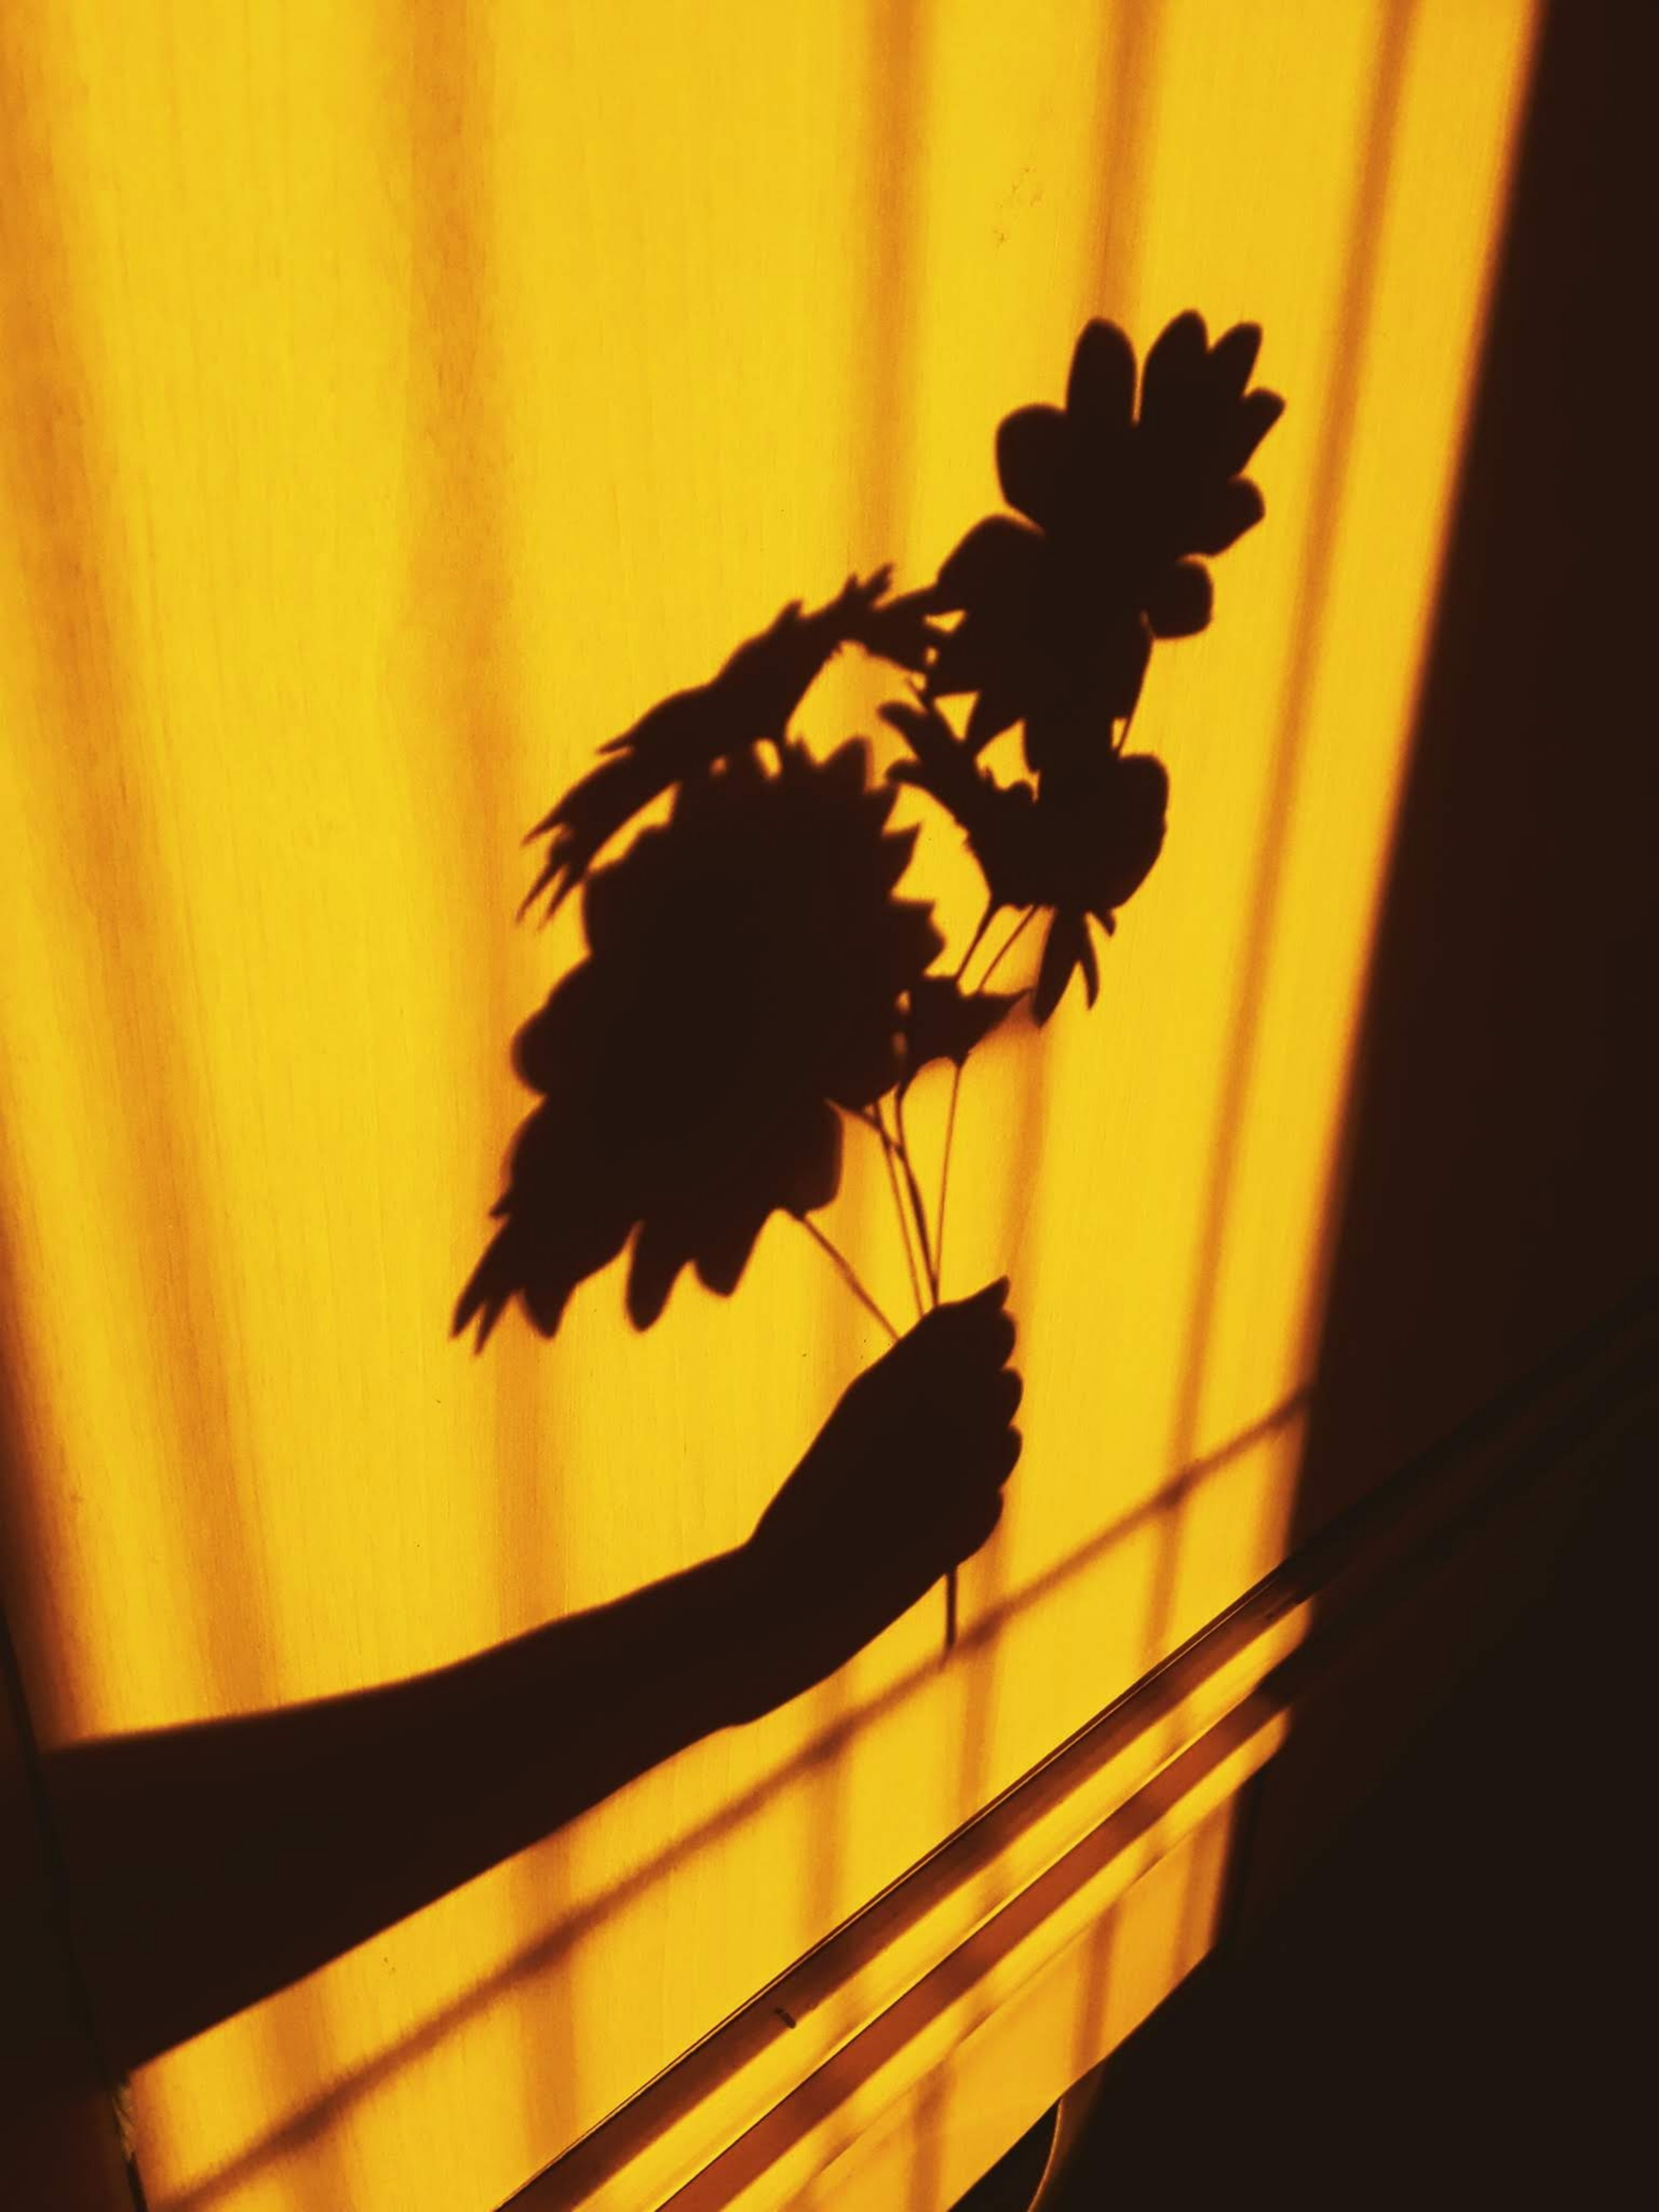 pexels photo 2920851.jpeg?cs=srgb&dl=photo of person s shadow holding a flowers 2920851